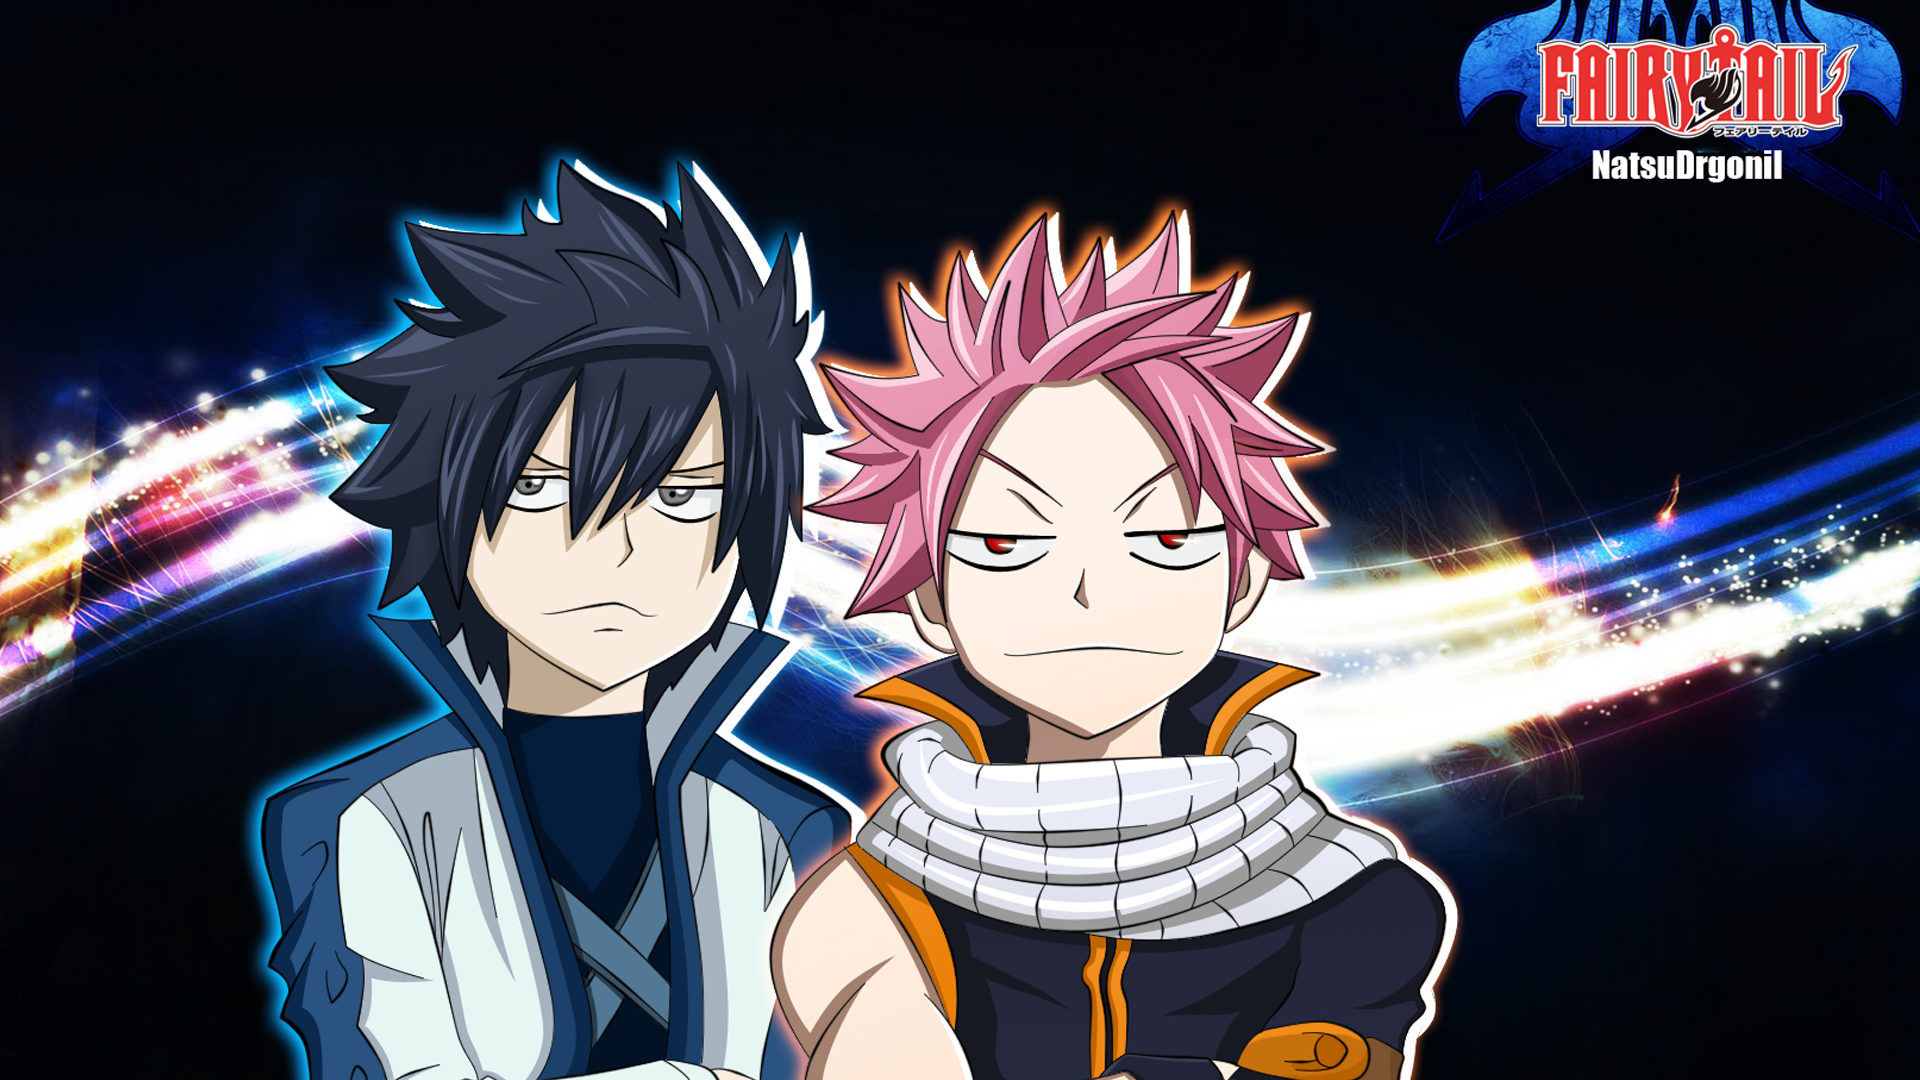 Gray Fullbuster And Natsu Dragneel Fairy Tail Anime